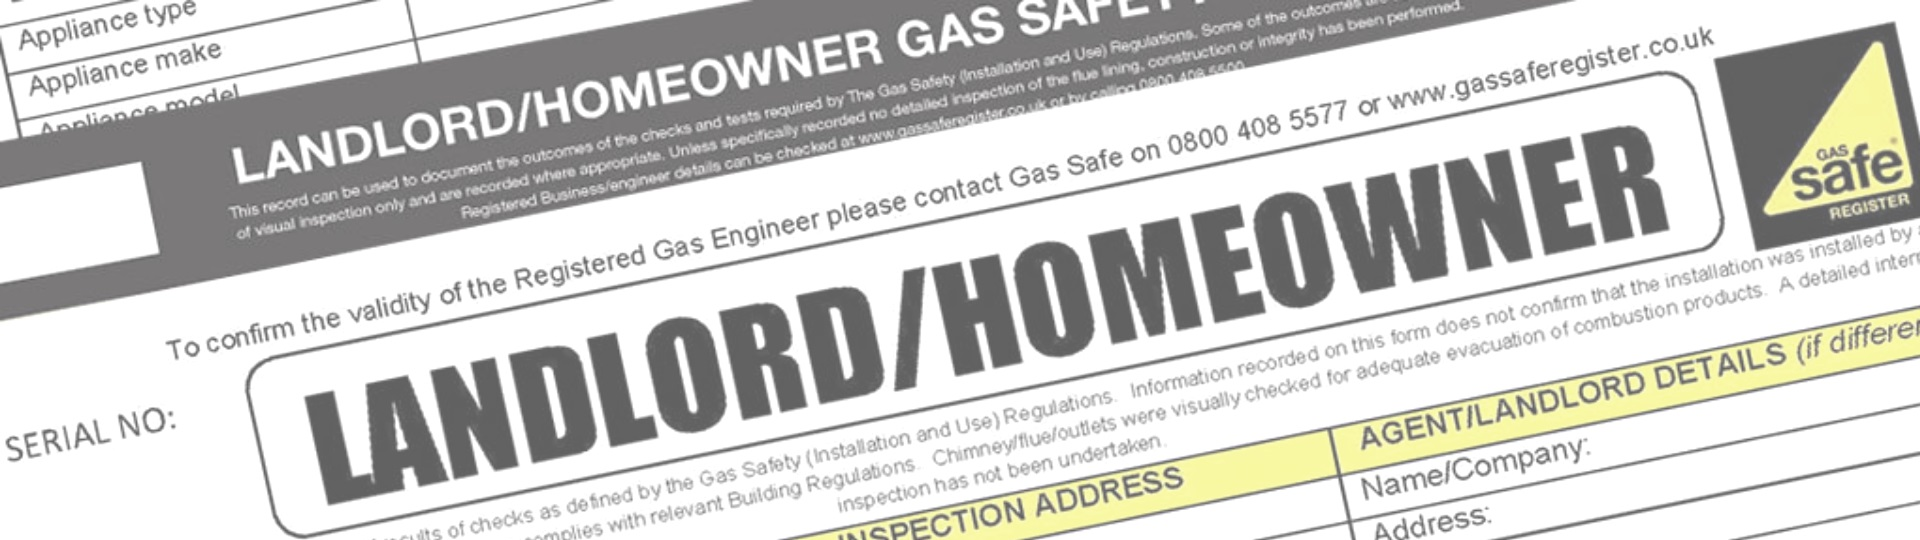 Gas Saftey Certificates Downend